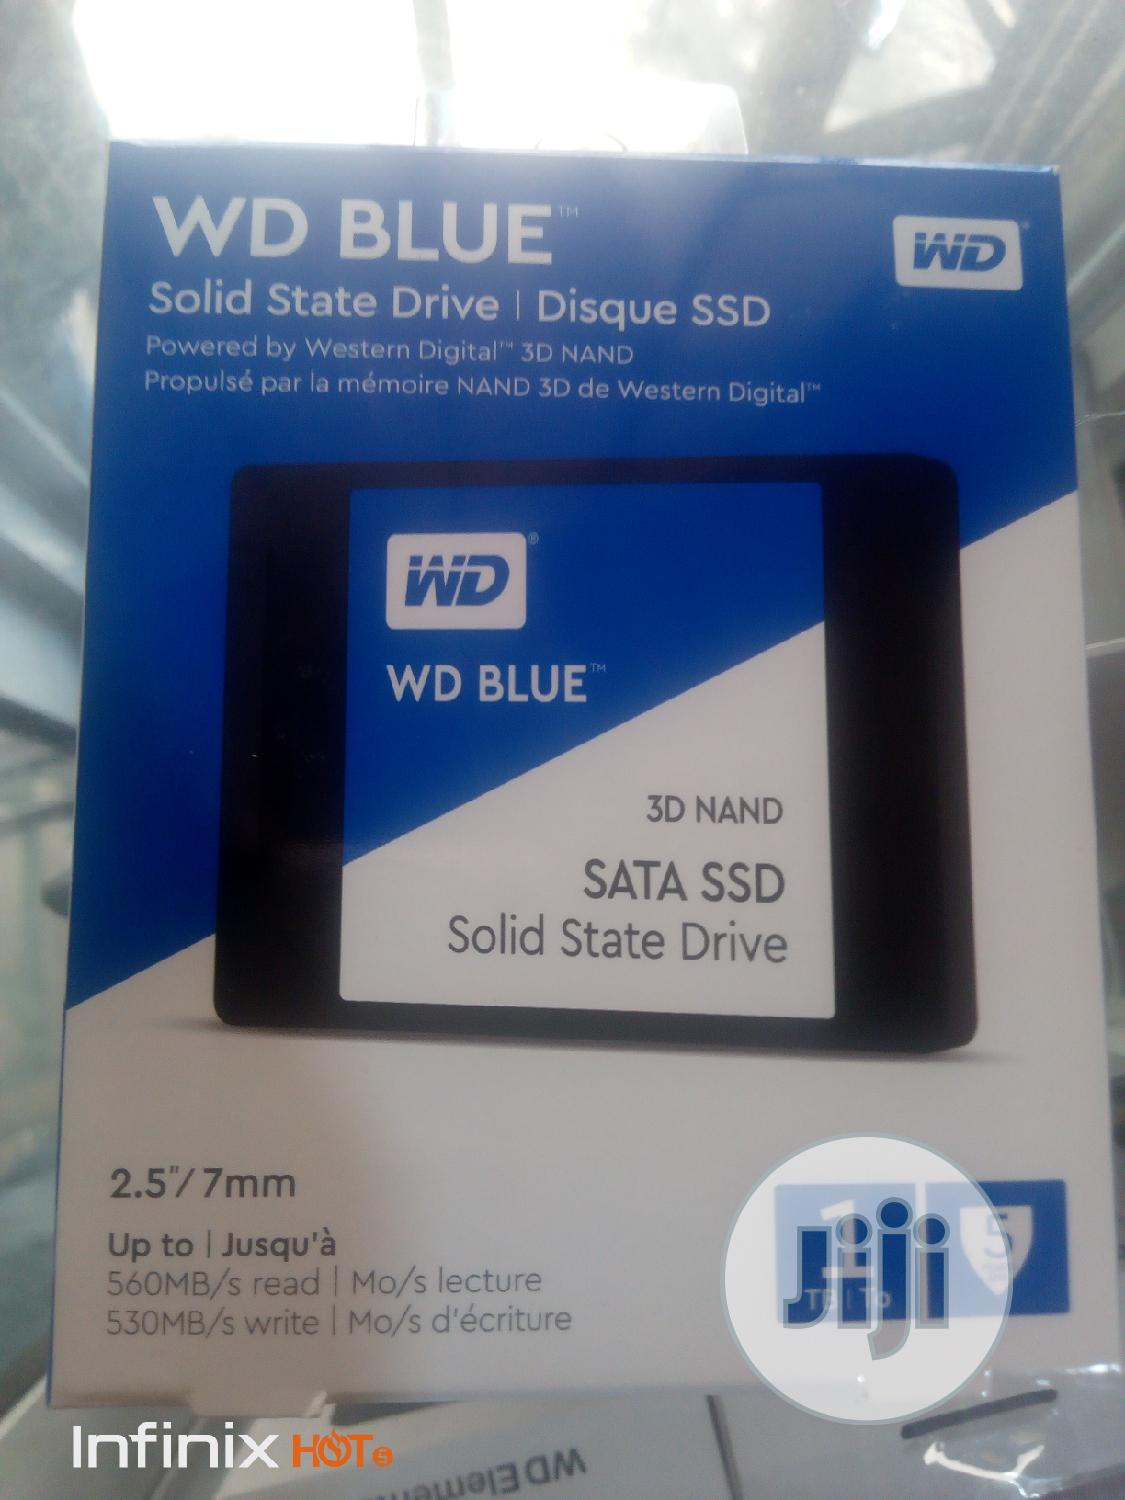 WD BLUE Solid State Drive1tb